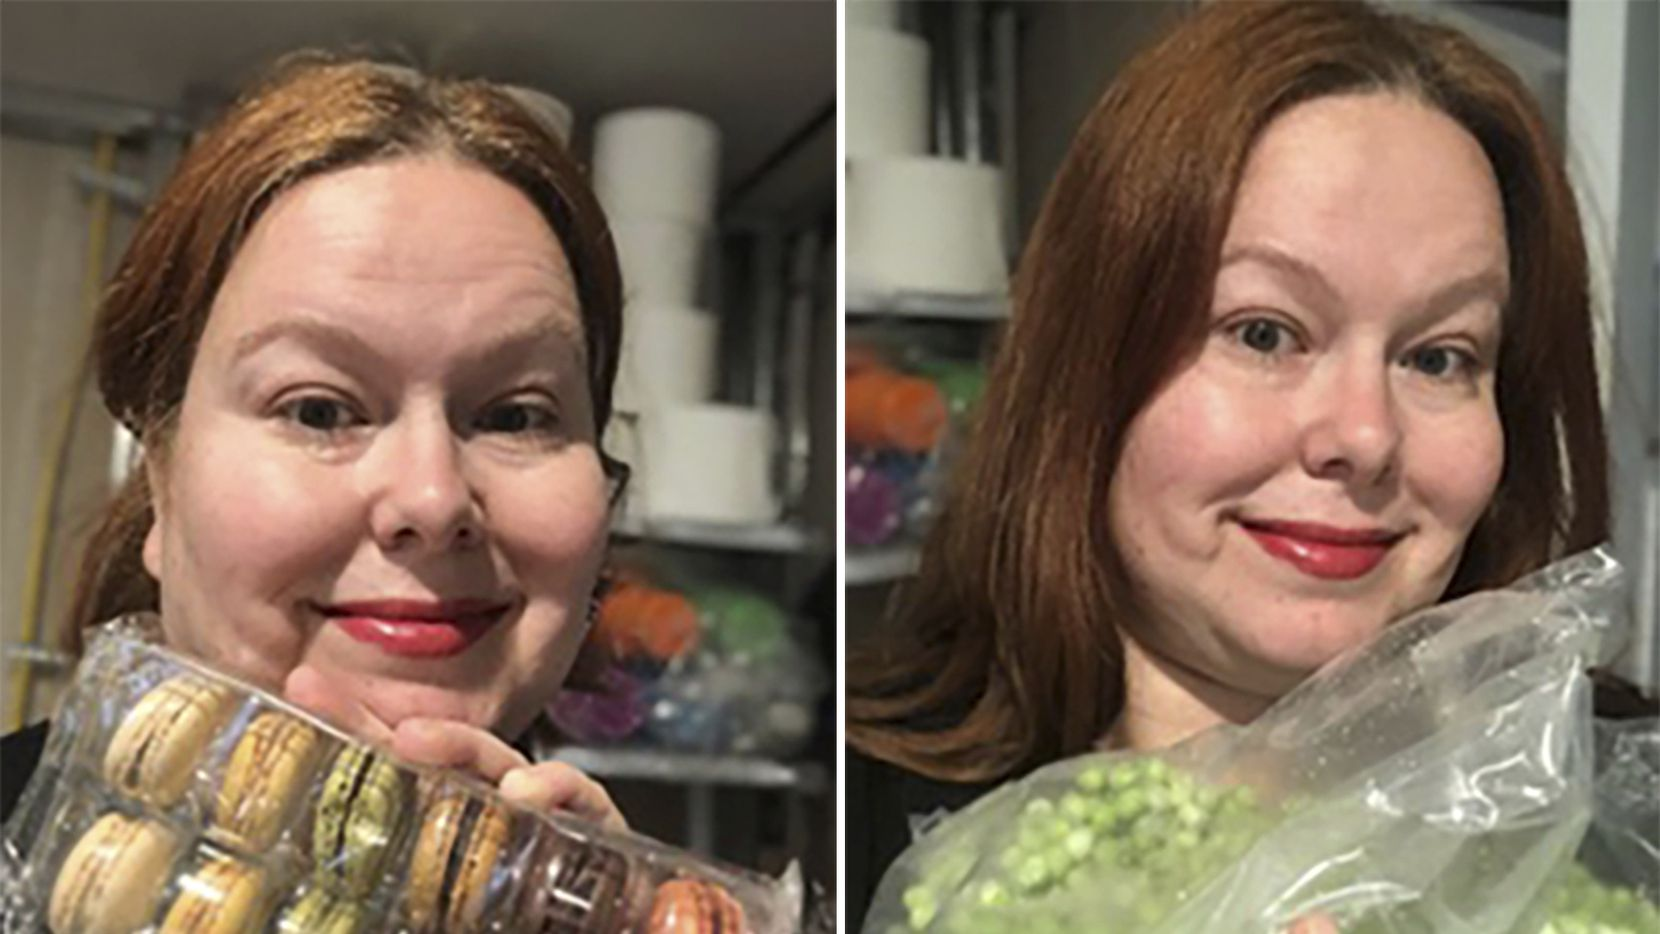 This combination photo shows Jennifer Salgado, 42, of Bloomfield, N.J., with a pack of macarons, left, and a bag of peas she ordered during coronavirus lockdown. Millions of people have helped online retail sales surge as consumer spending fell off rapidly when businesses shut down. Salgado snapped up 96 macarons from a bulk-buying store, along with 24 pounds of frozen peas.